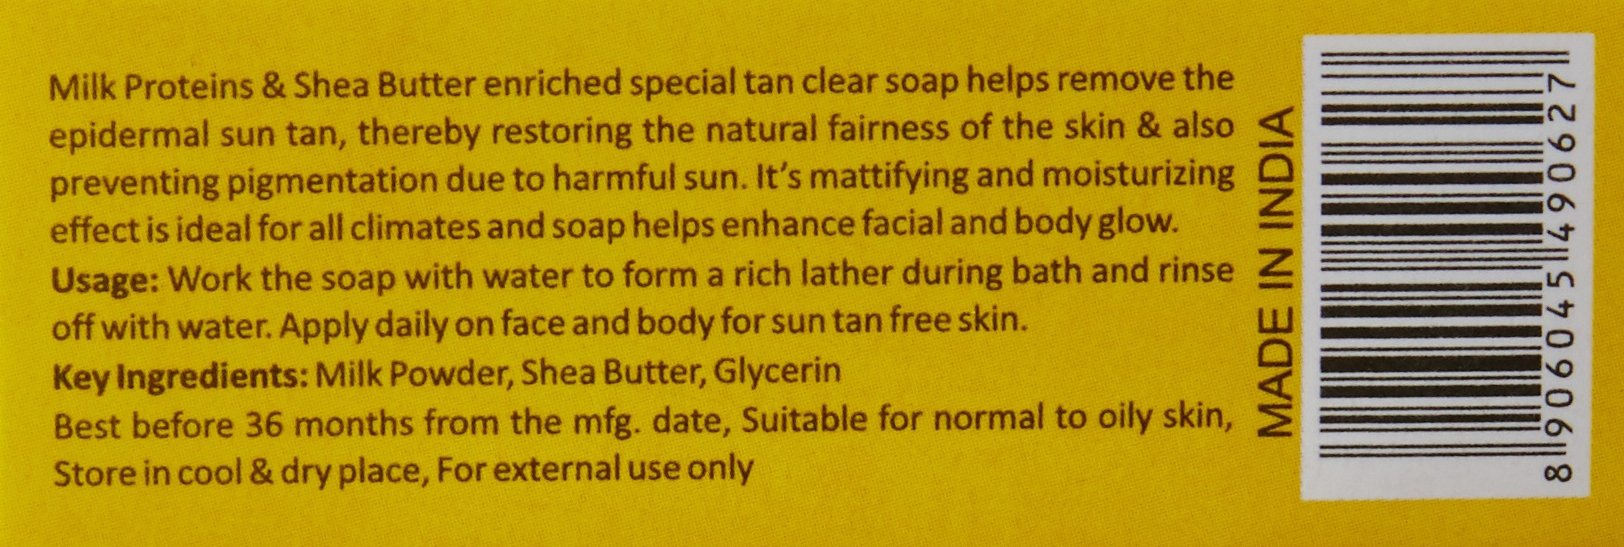 Nature's Essence Lacto Tan Clear Fairness Soap 75g by Nature's Essence (Image #2)